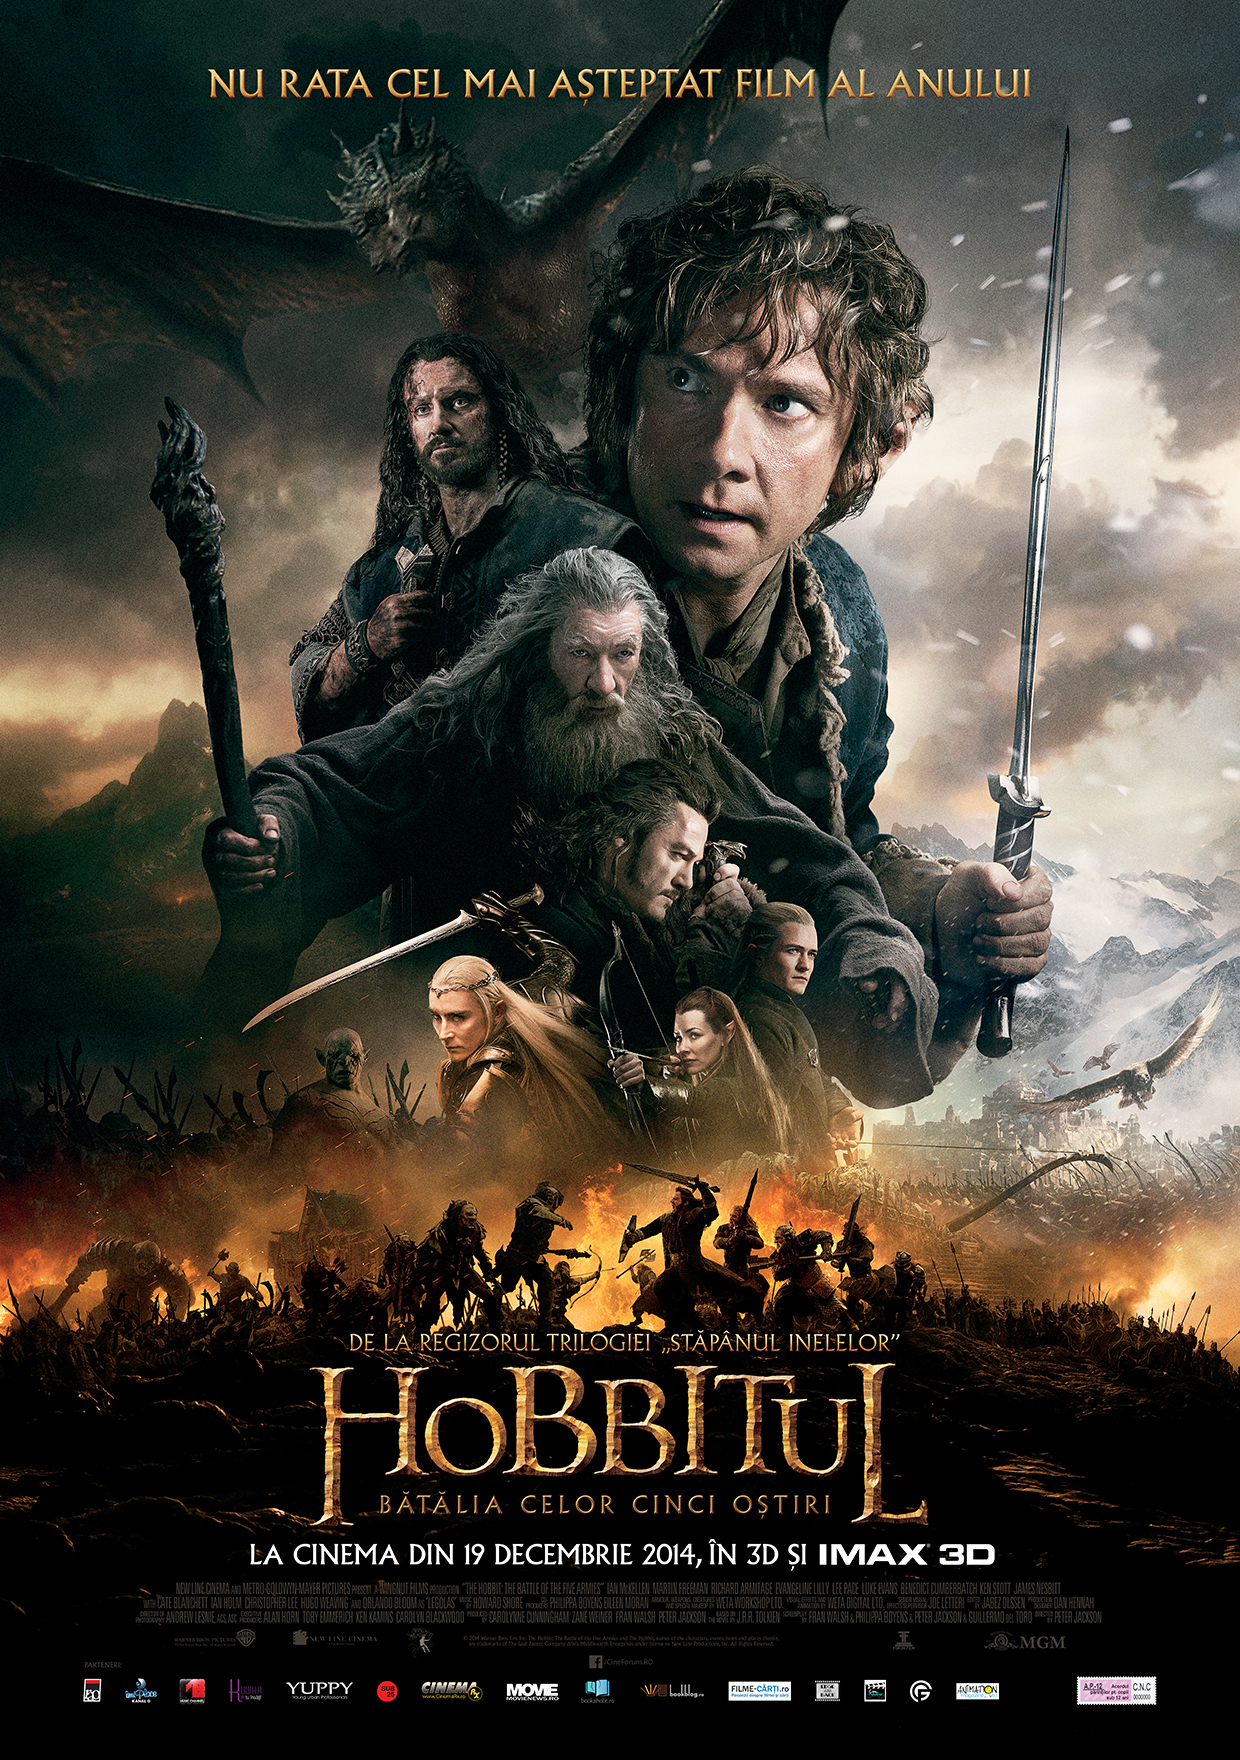 http://static.cinemagia.ro/img/db/movie/57/87/19/the-hobbit-the-battle-of-the-five-armies-591158l.jpg